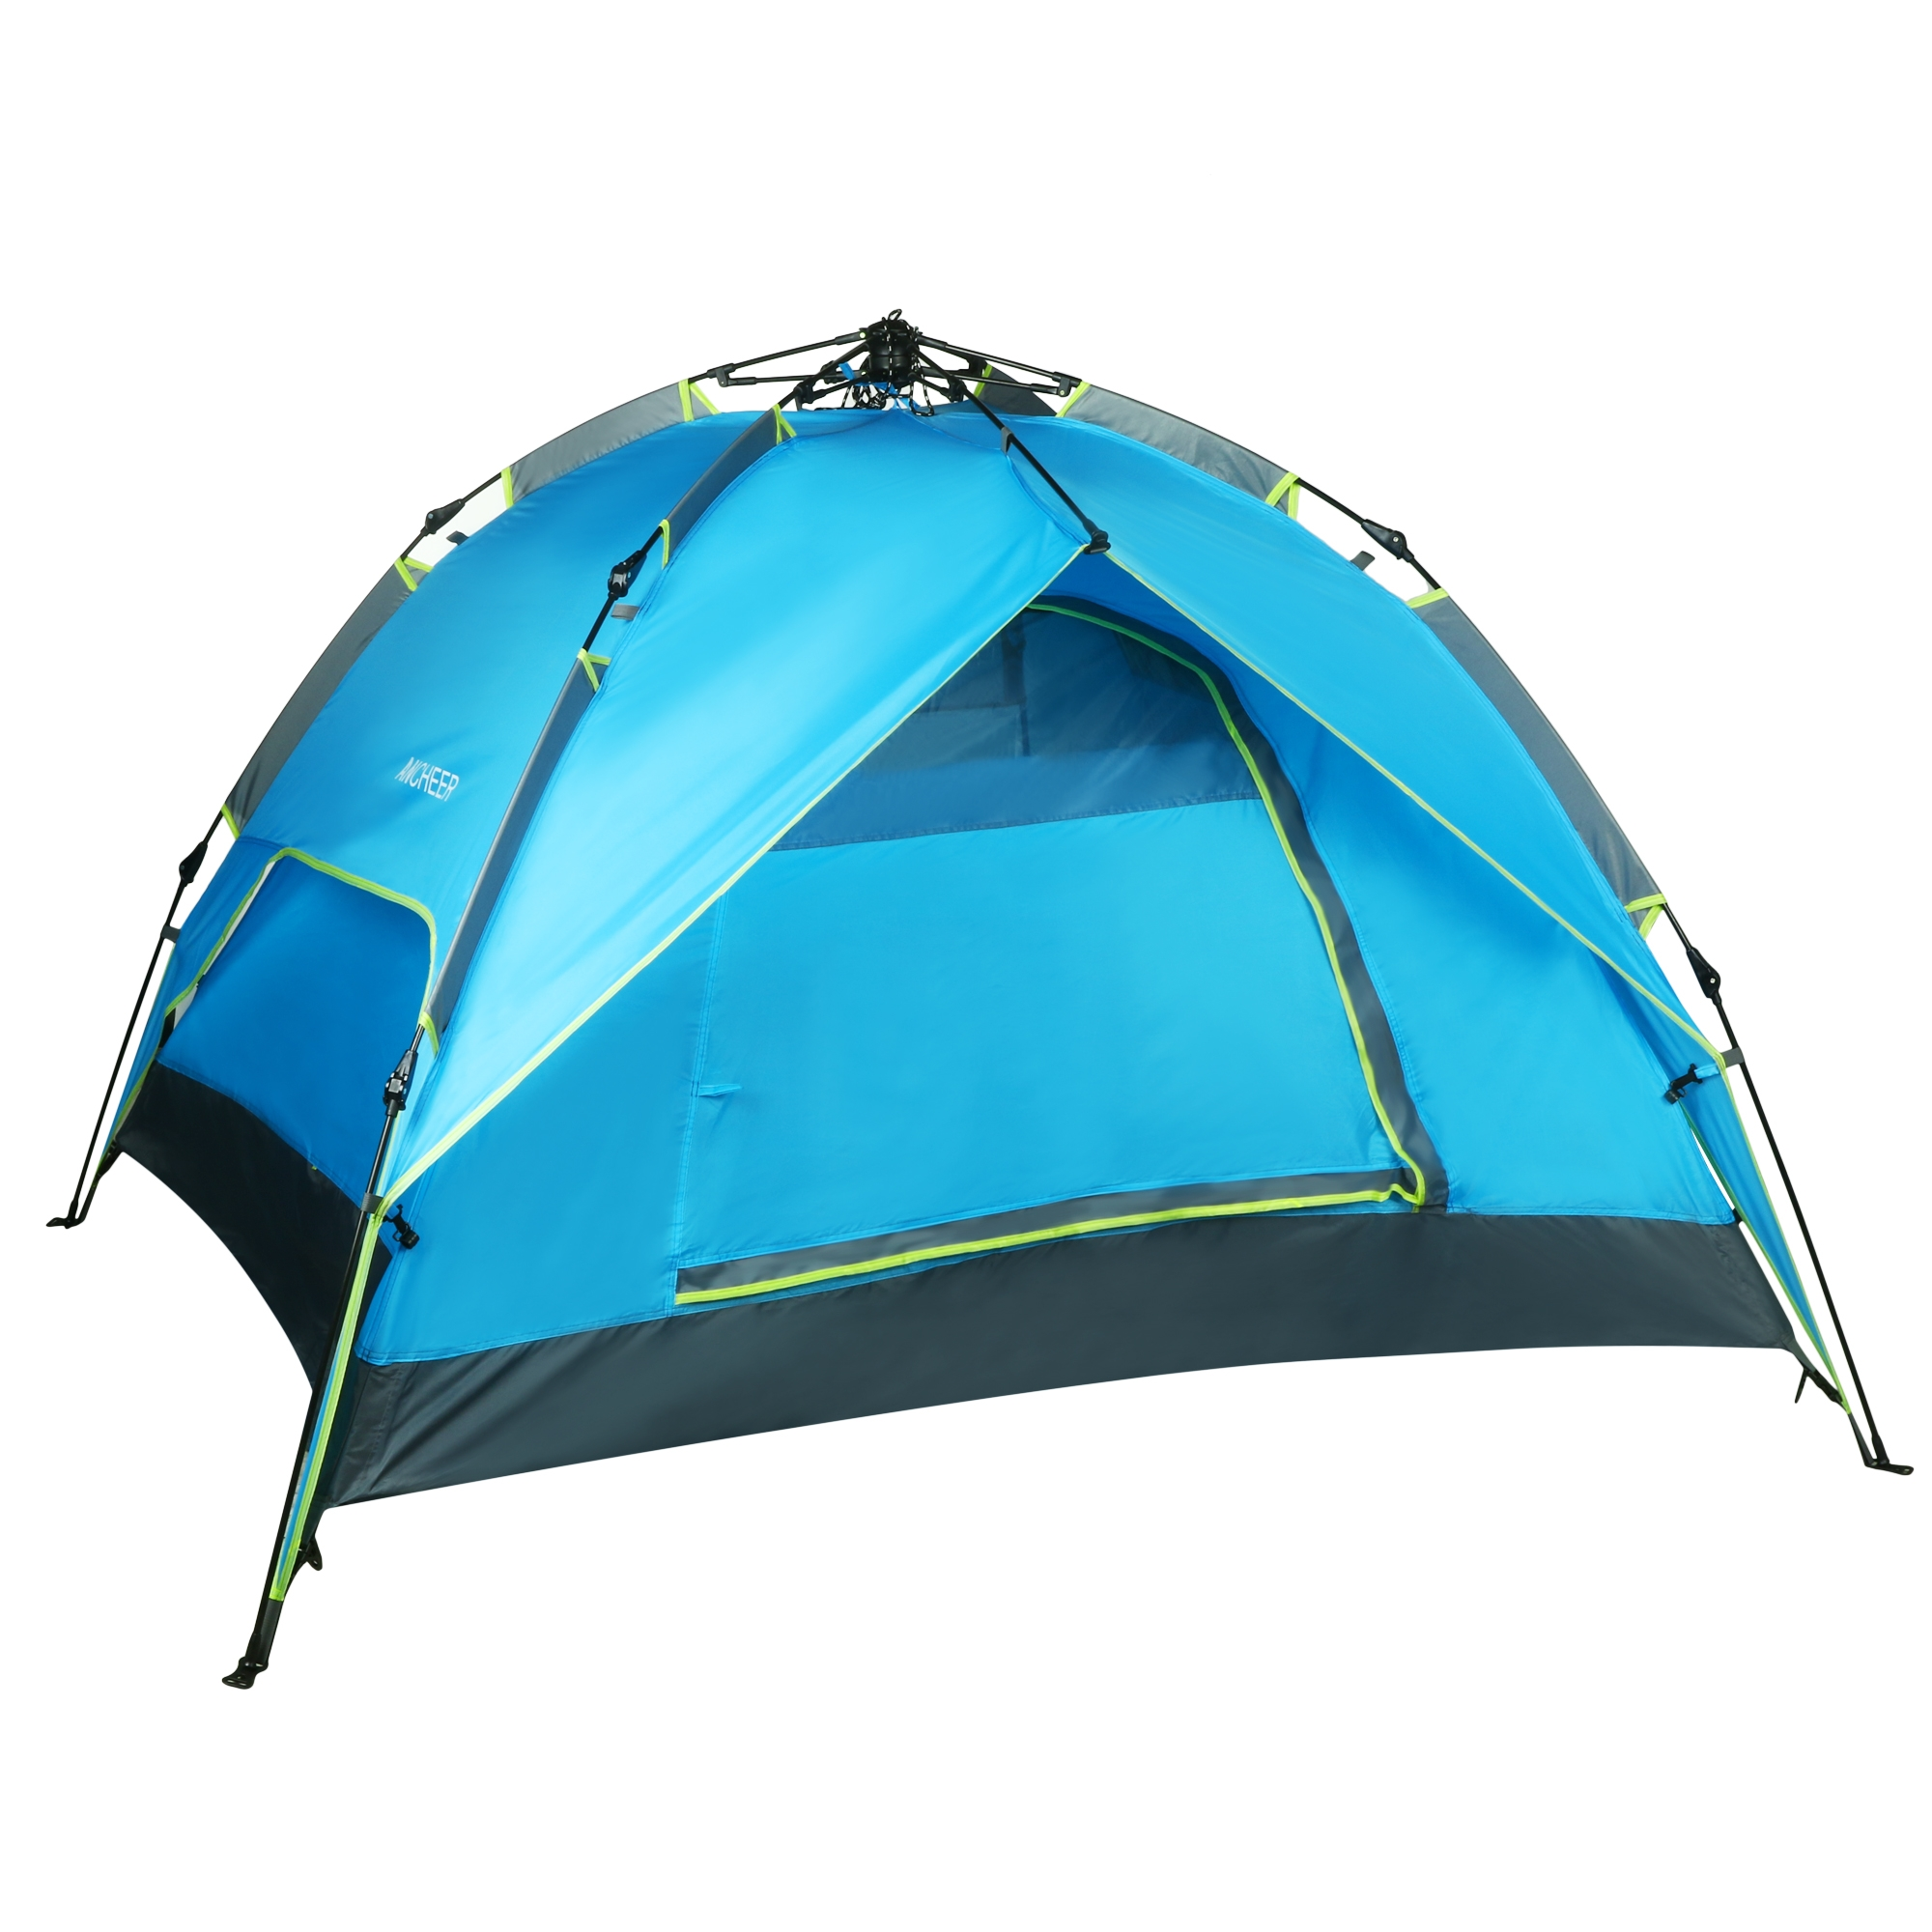 Instant Automatic Lightweight Layers 3-4 Person Pop Up Buckle Waterproof Camping Tent with Rainfly Carry Bag Family Tent by